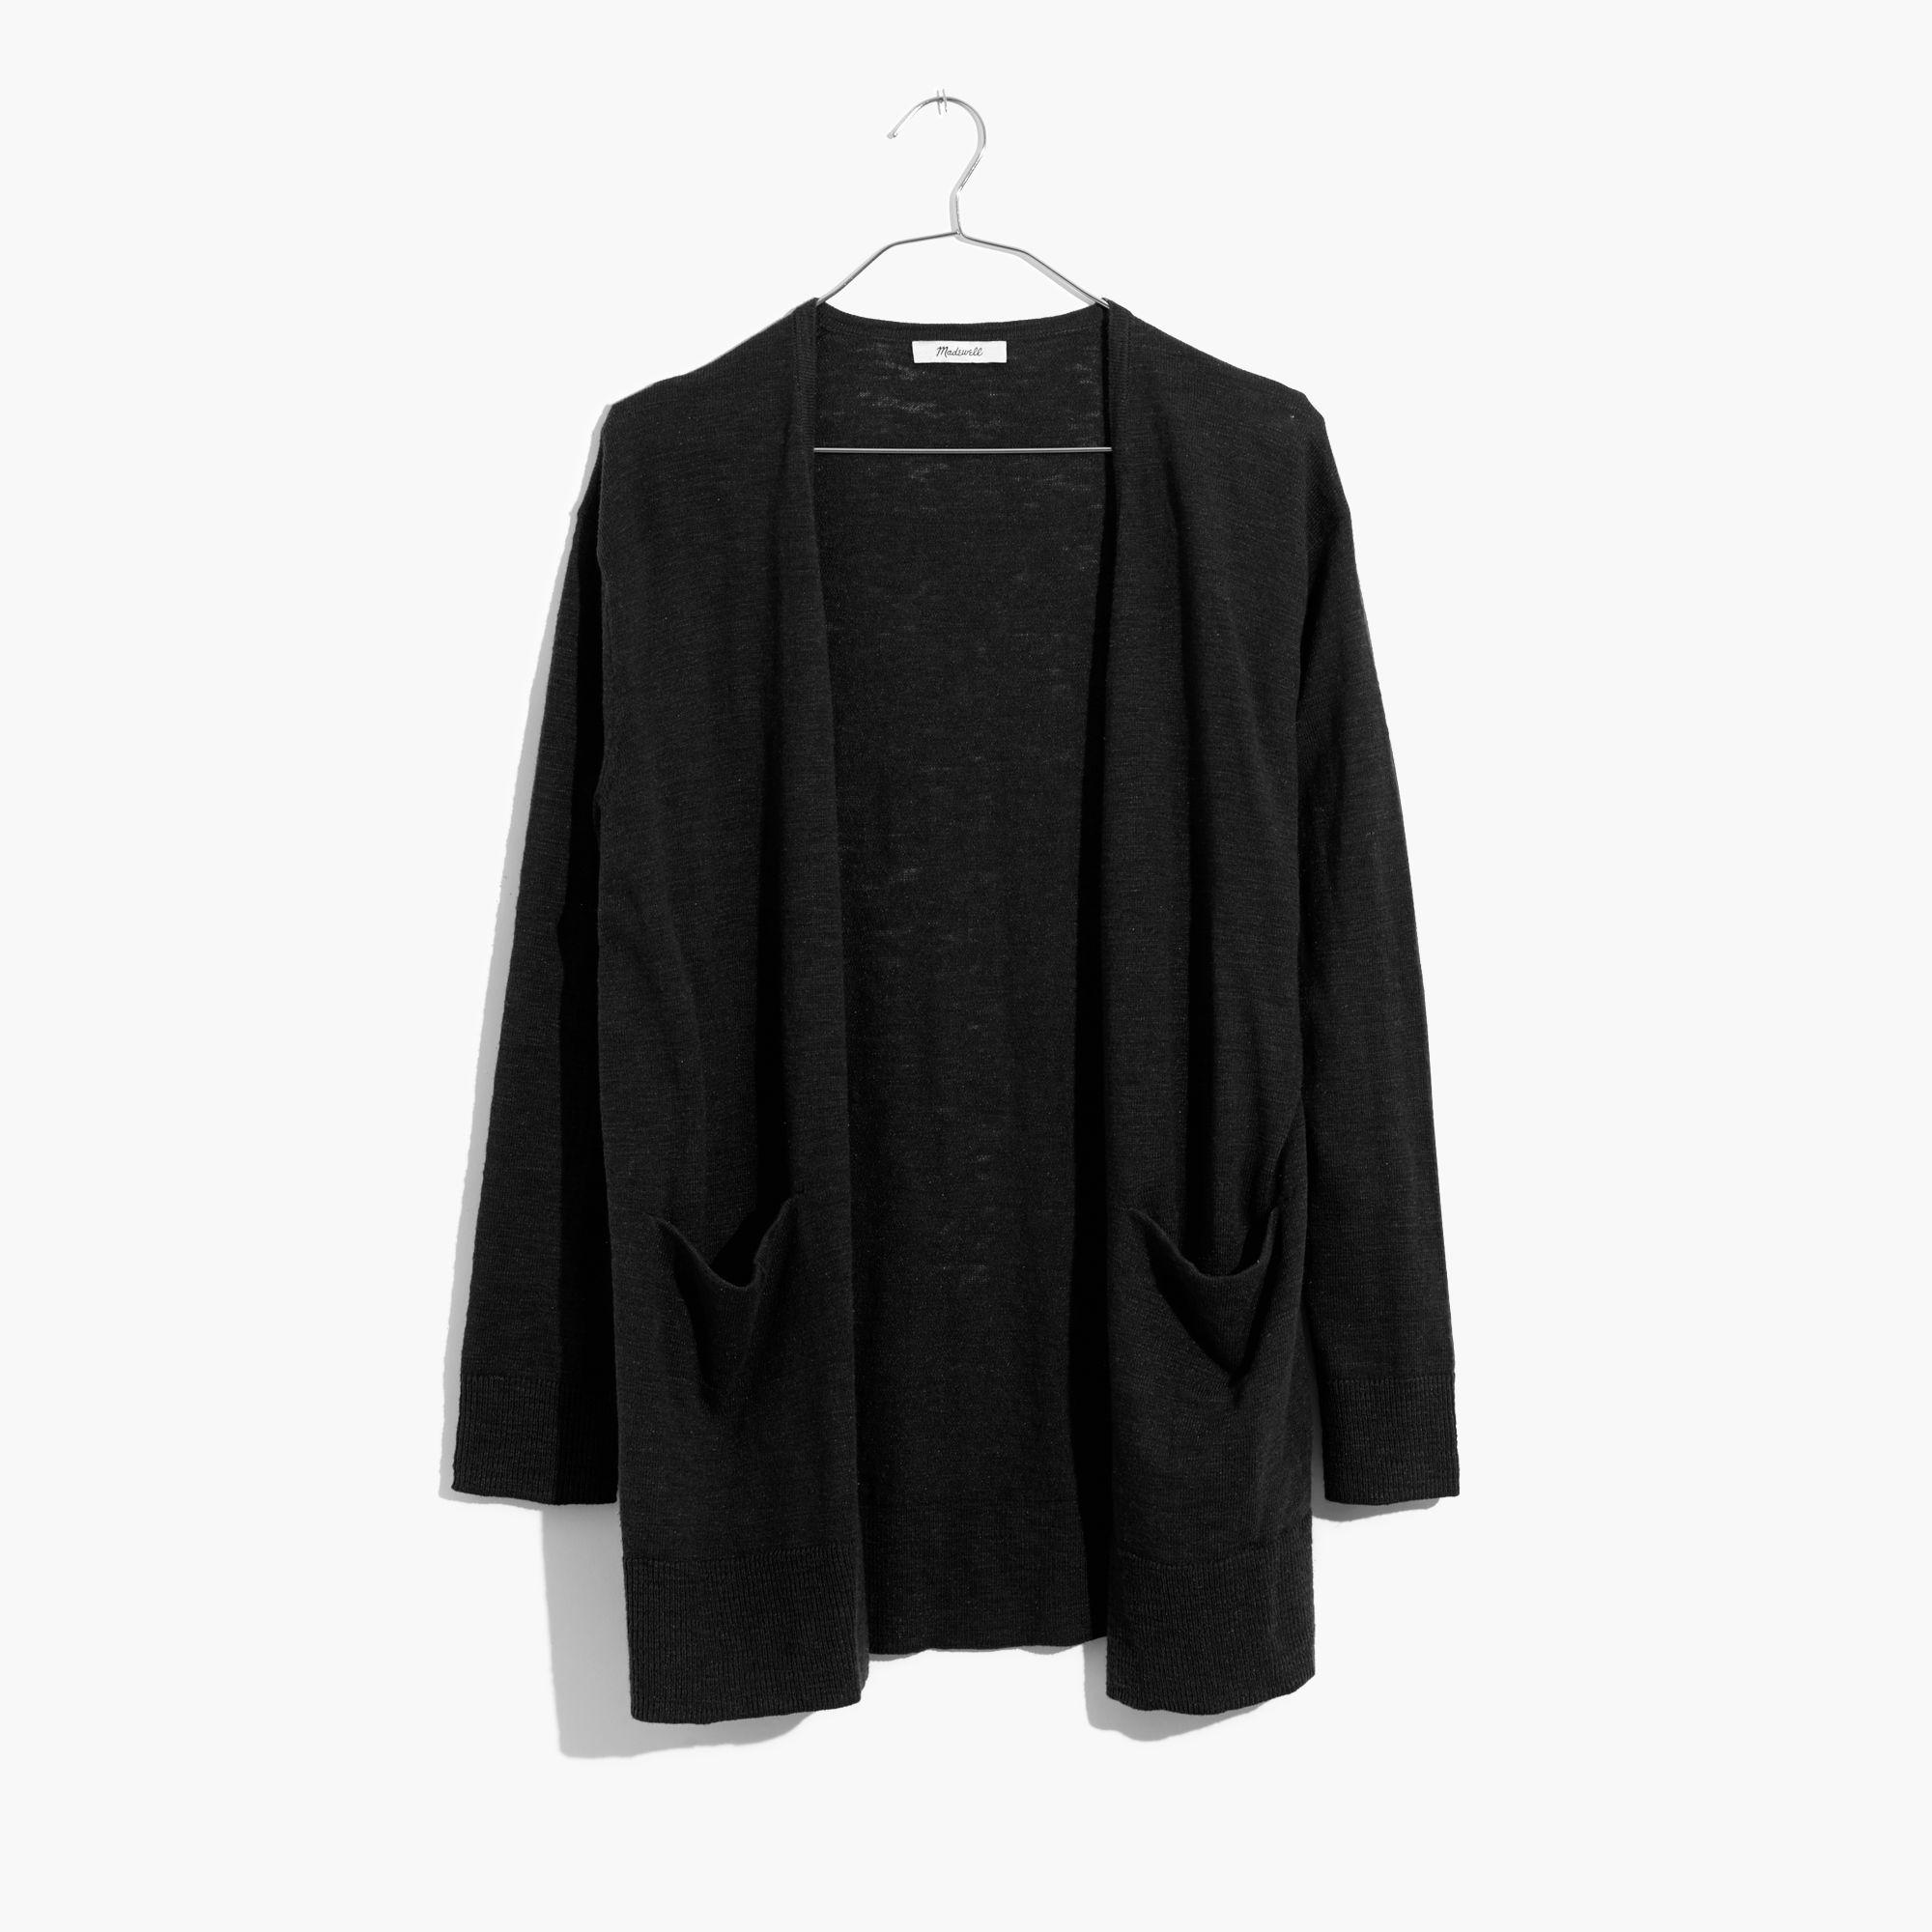 Madewell Summer Ryder Cardigan Sweater in Black | Lyst